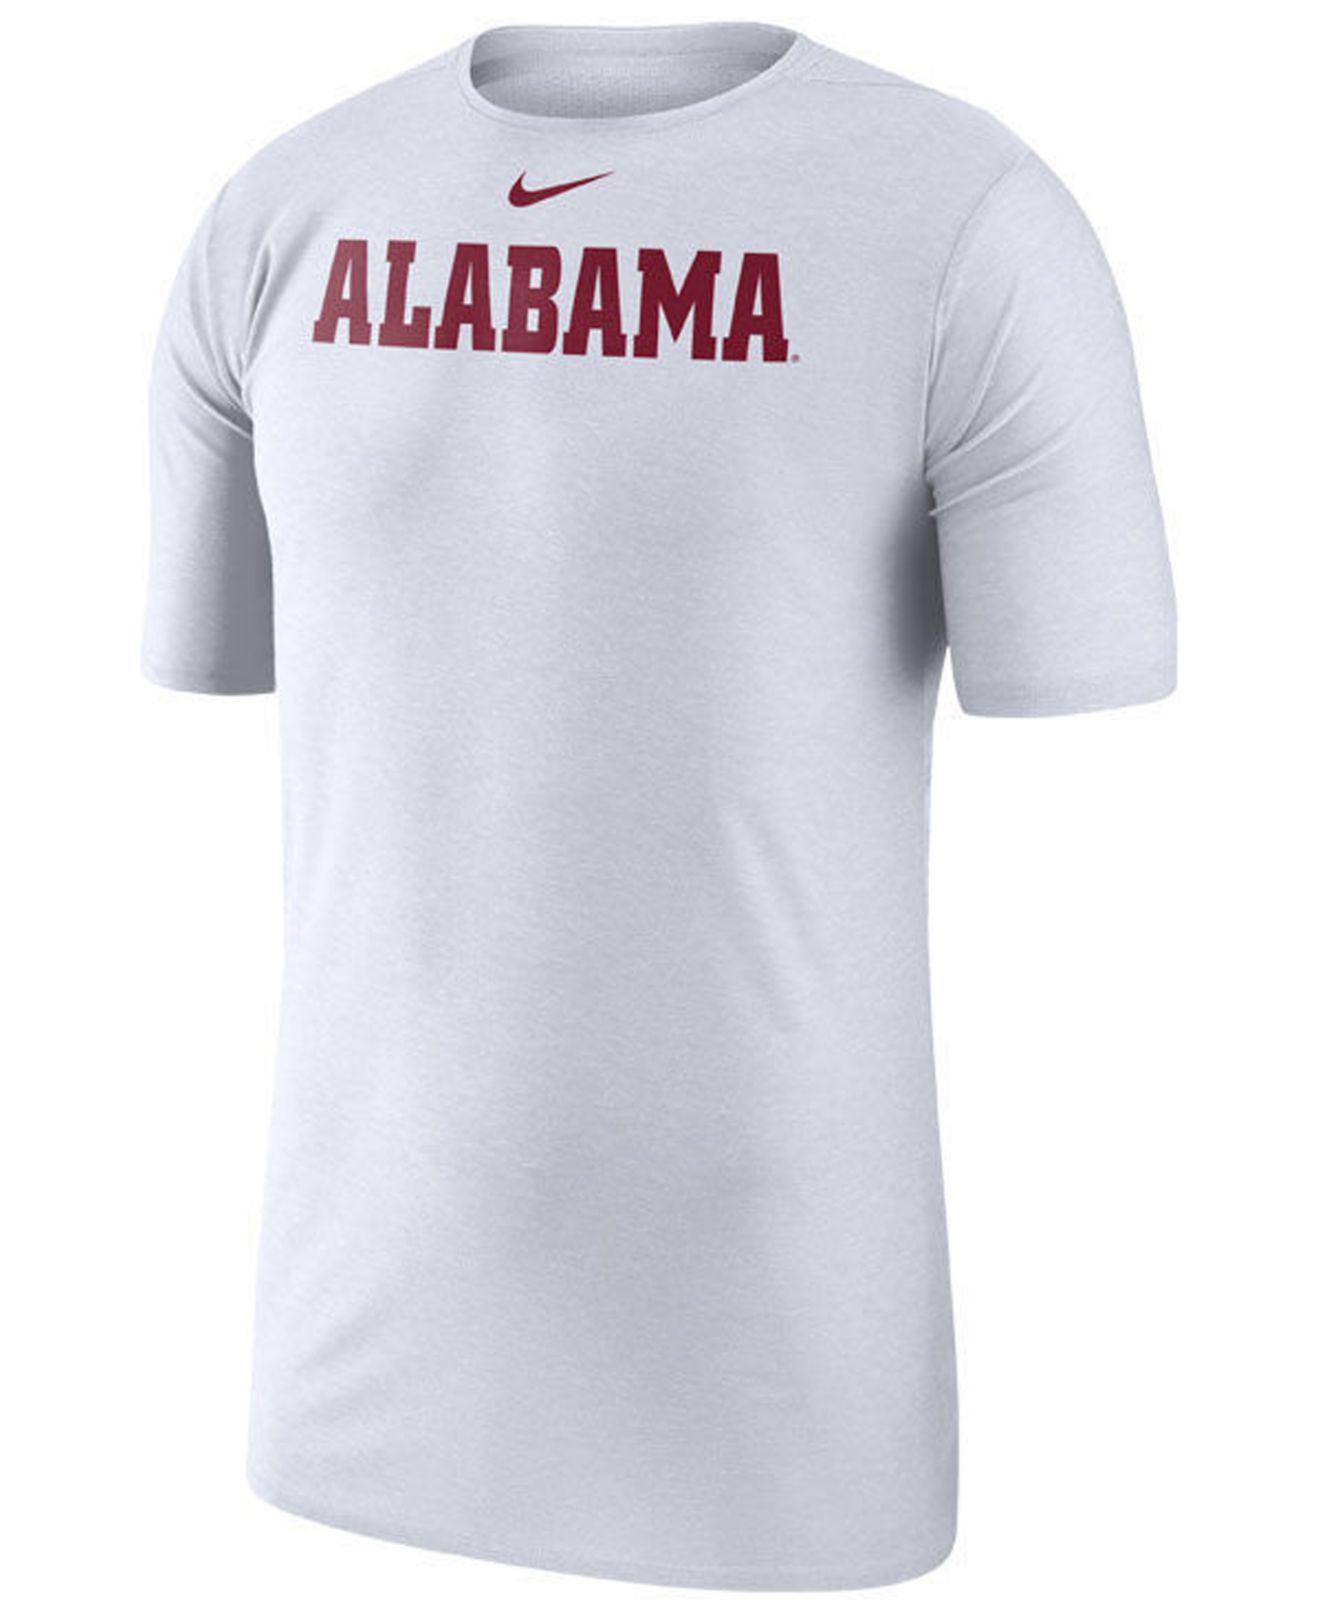 338462e7 Lyst - Nike Alabama Crimson Tide Player Top T-shirt in White for Men